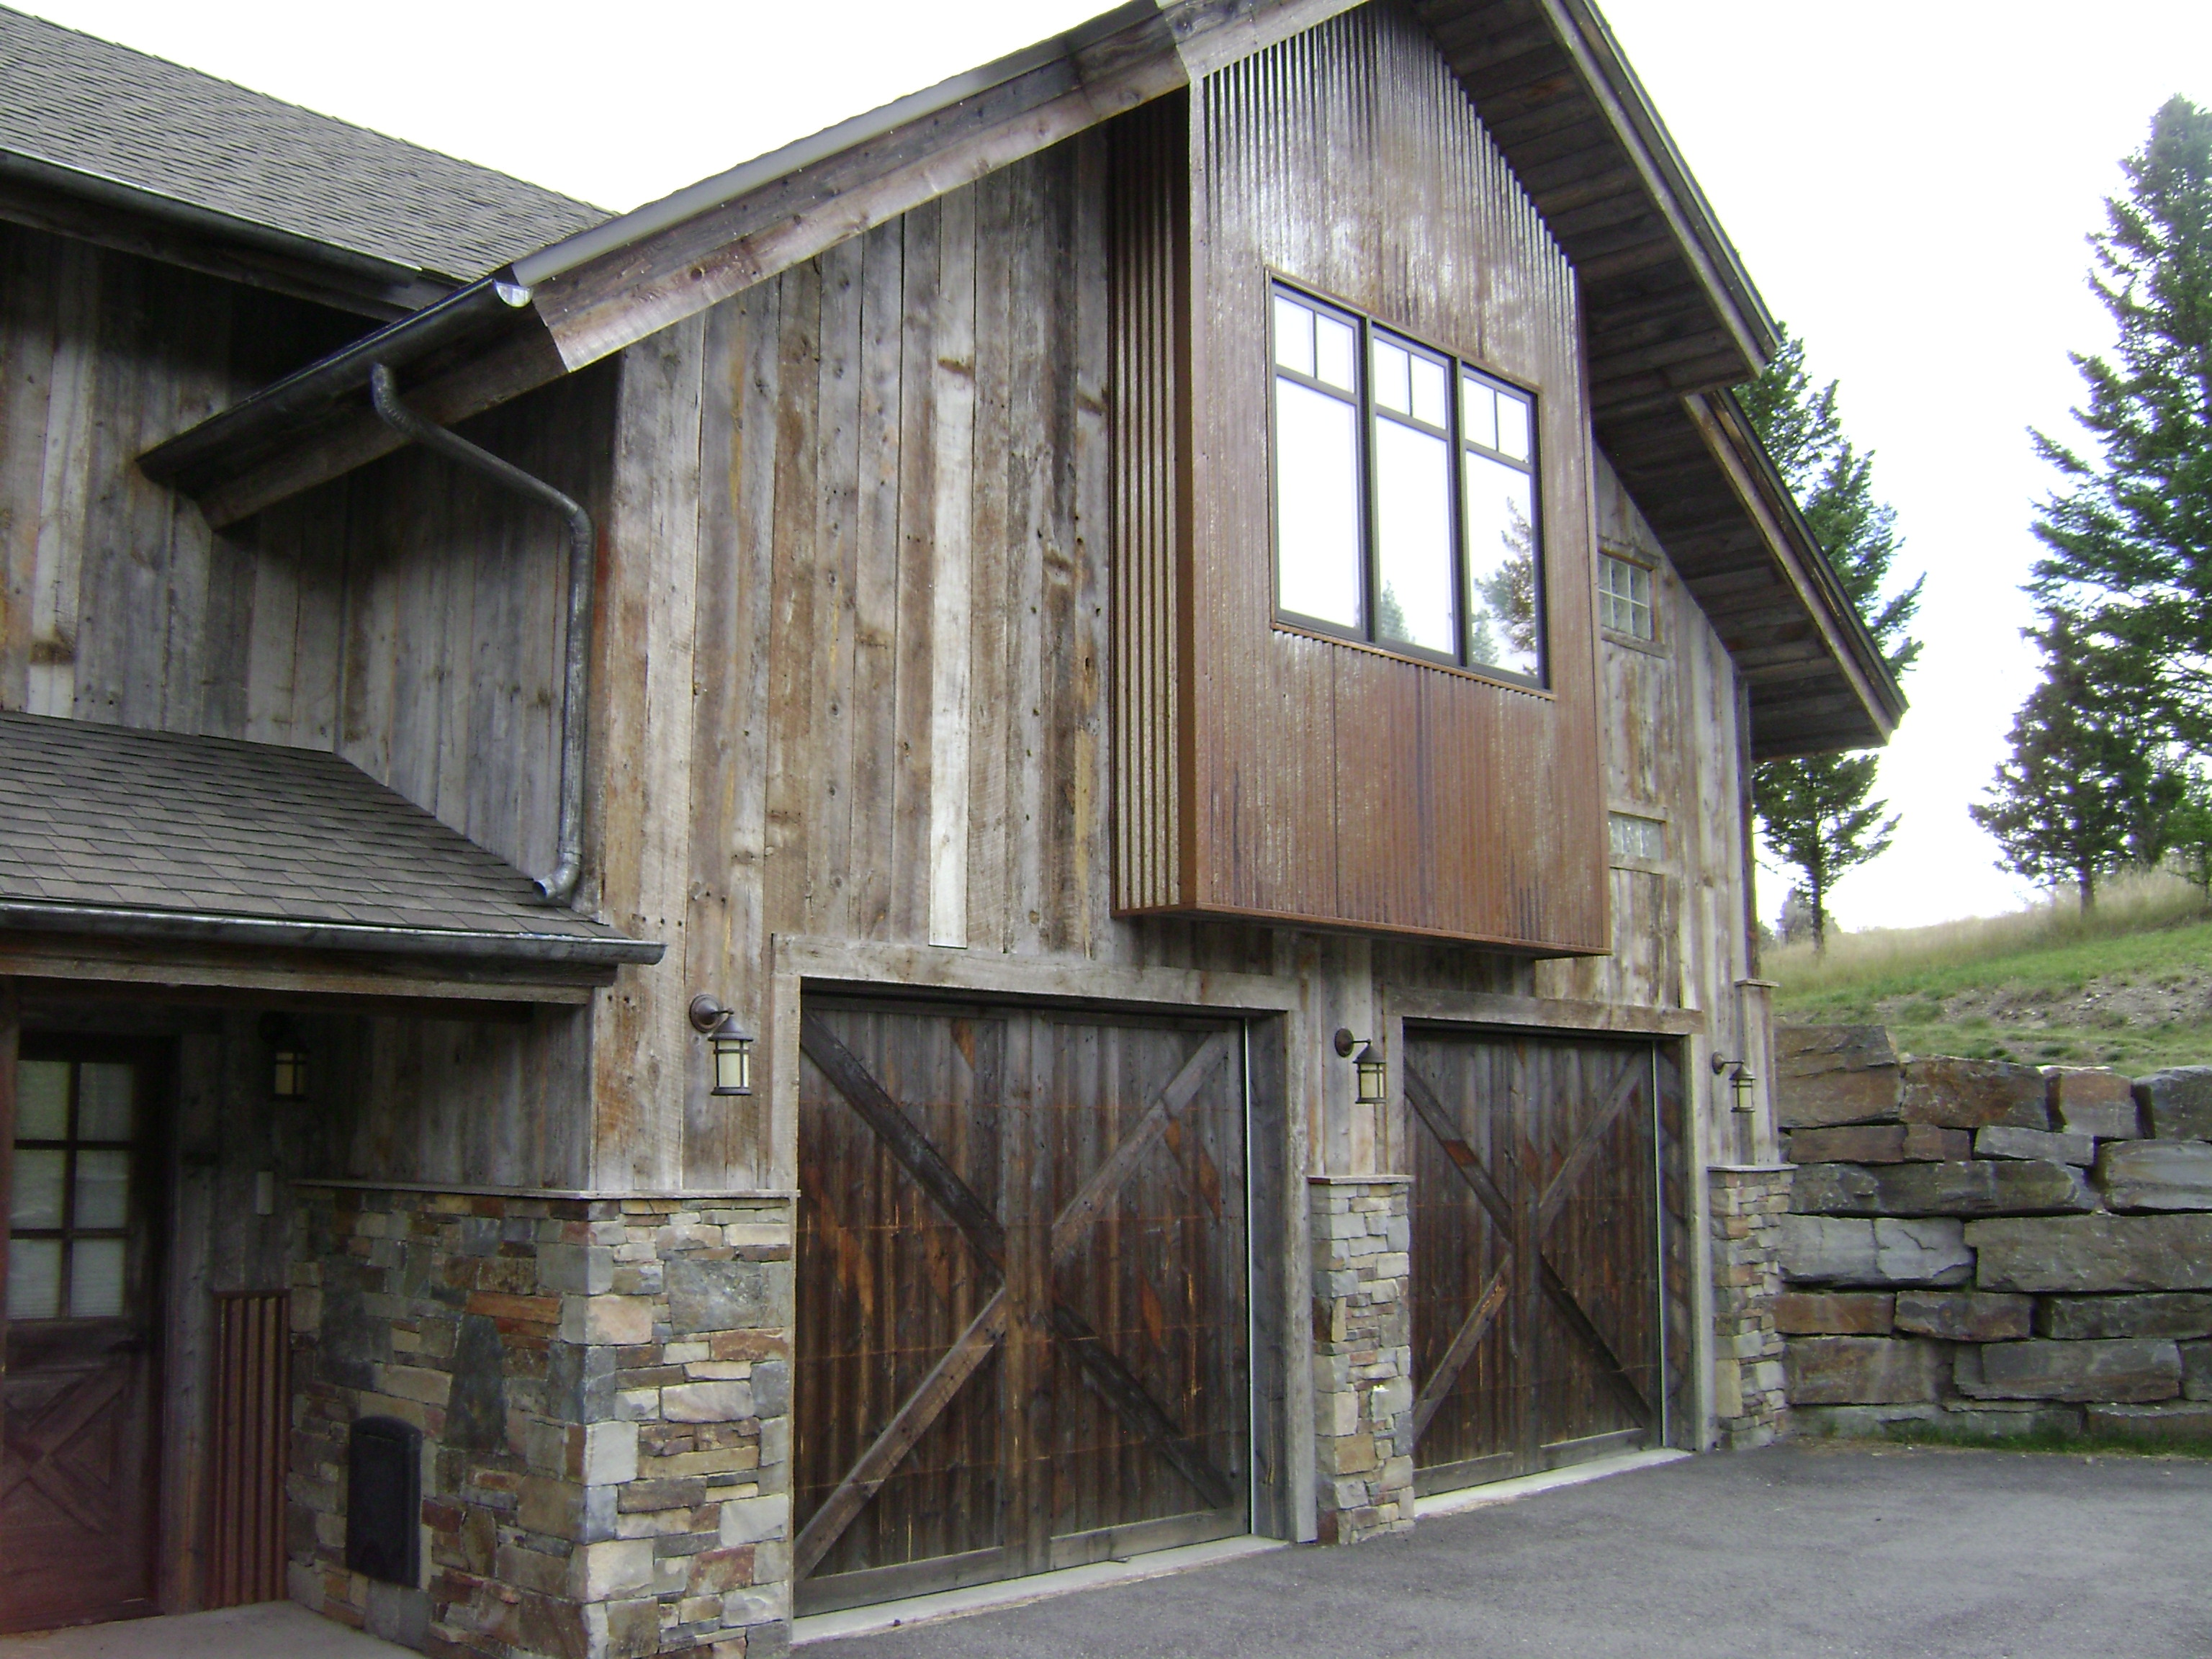 Siding idaho reclaimed lumber for Recycled wood siding